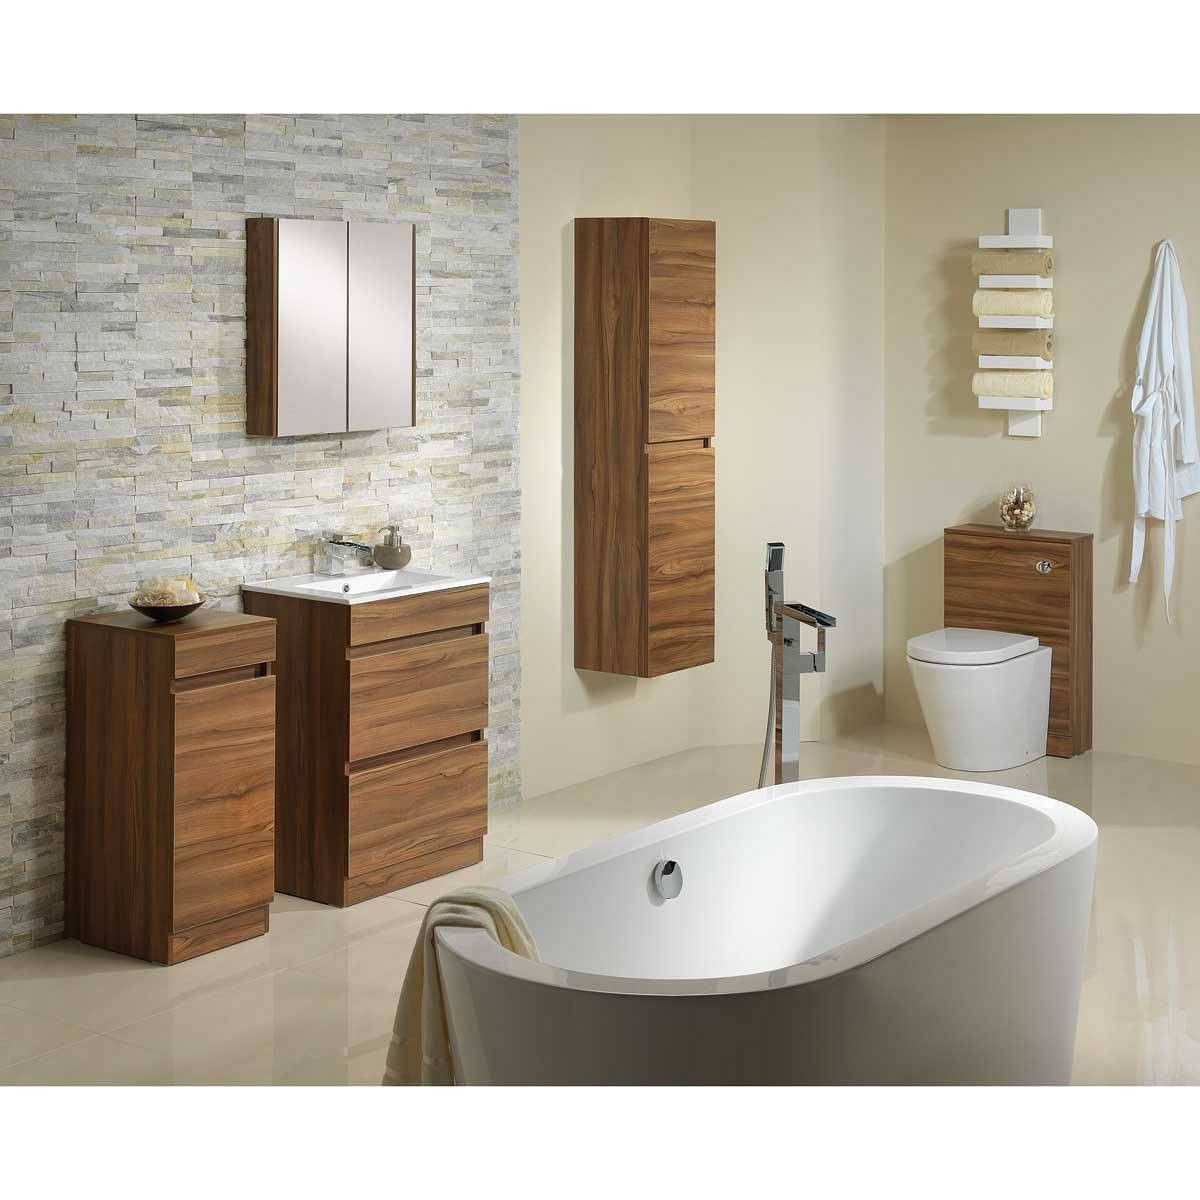 70 Walnut Bathroom Cabinet Interior House Paint Ideas Check More At Http